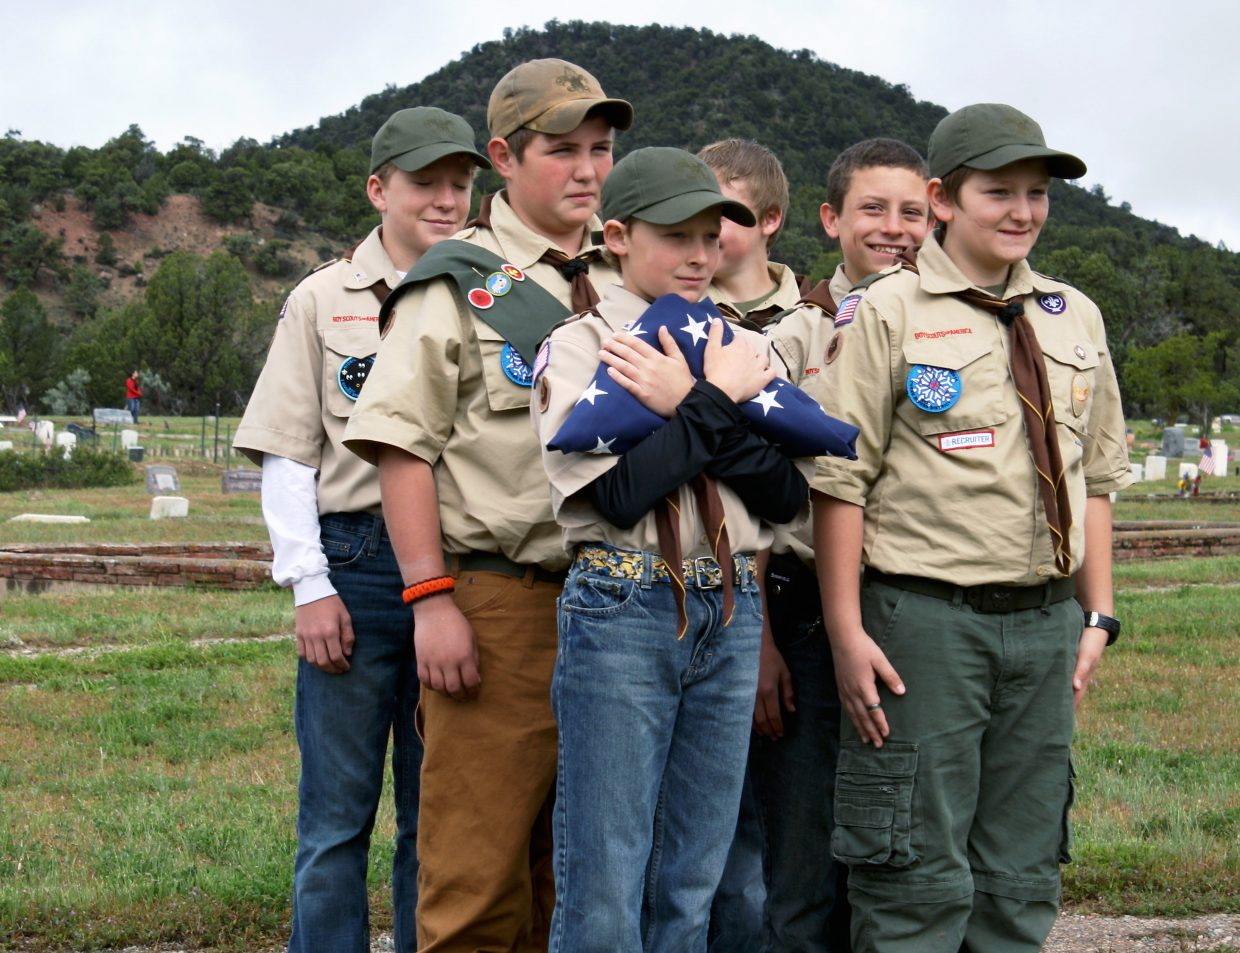 Members of Boy Scout Troop No. 221 prepare to deliver the flag during a ceremony at Highland Cemetery Monday.